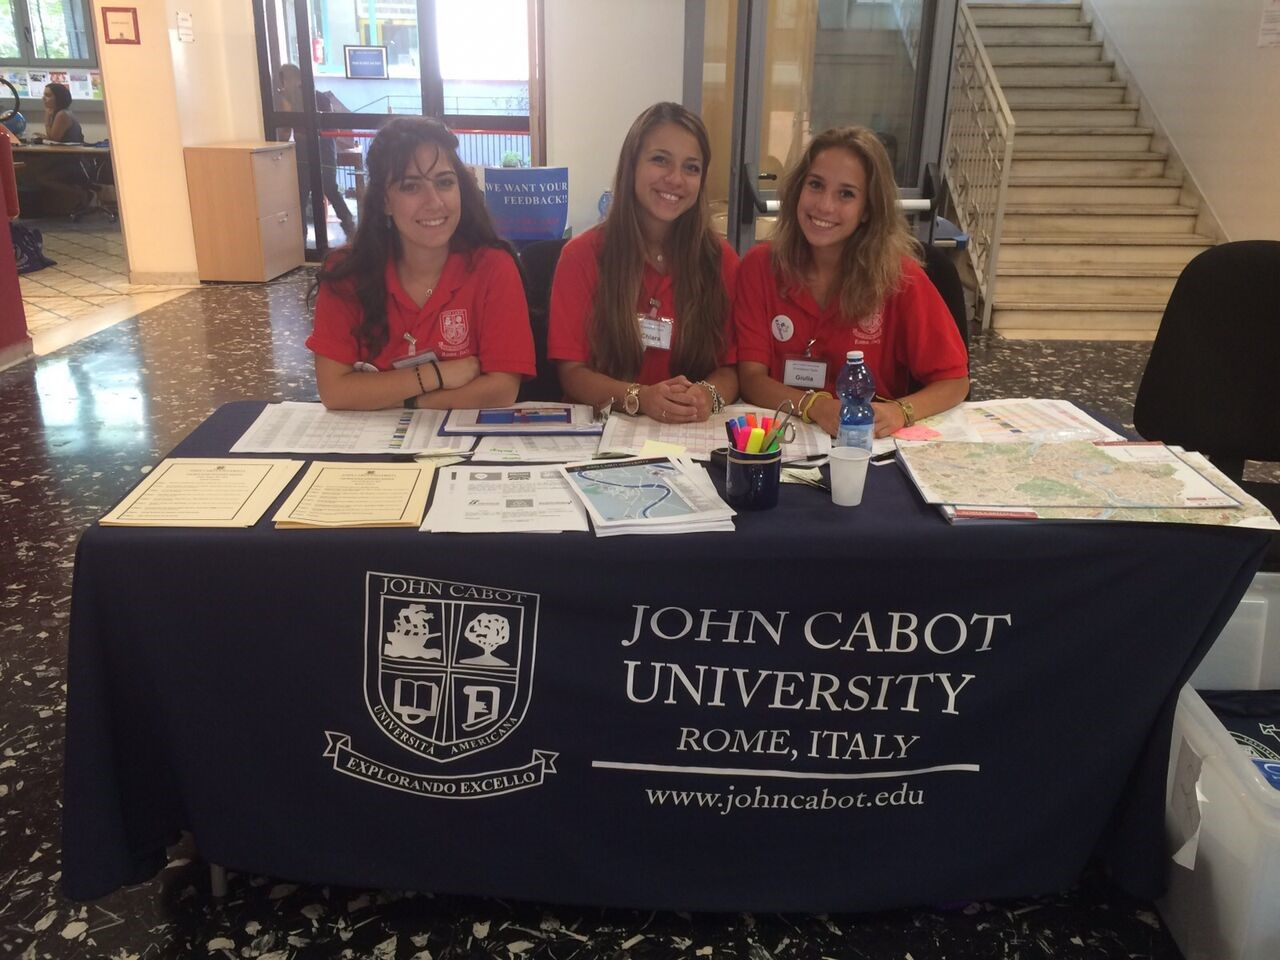 Current JCU students welcome new arrivals at the 2015 fall orientation